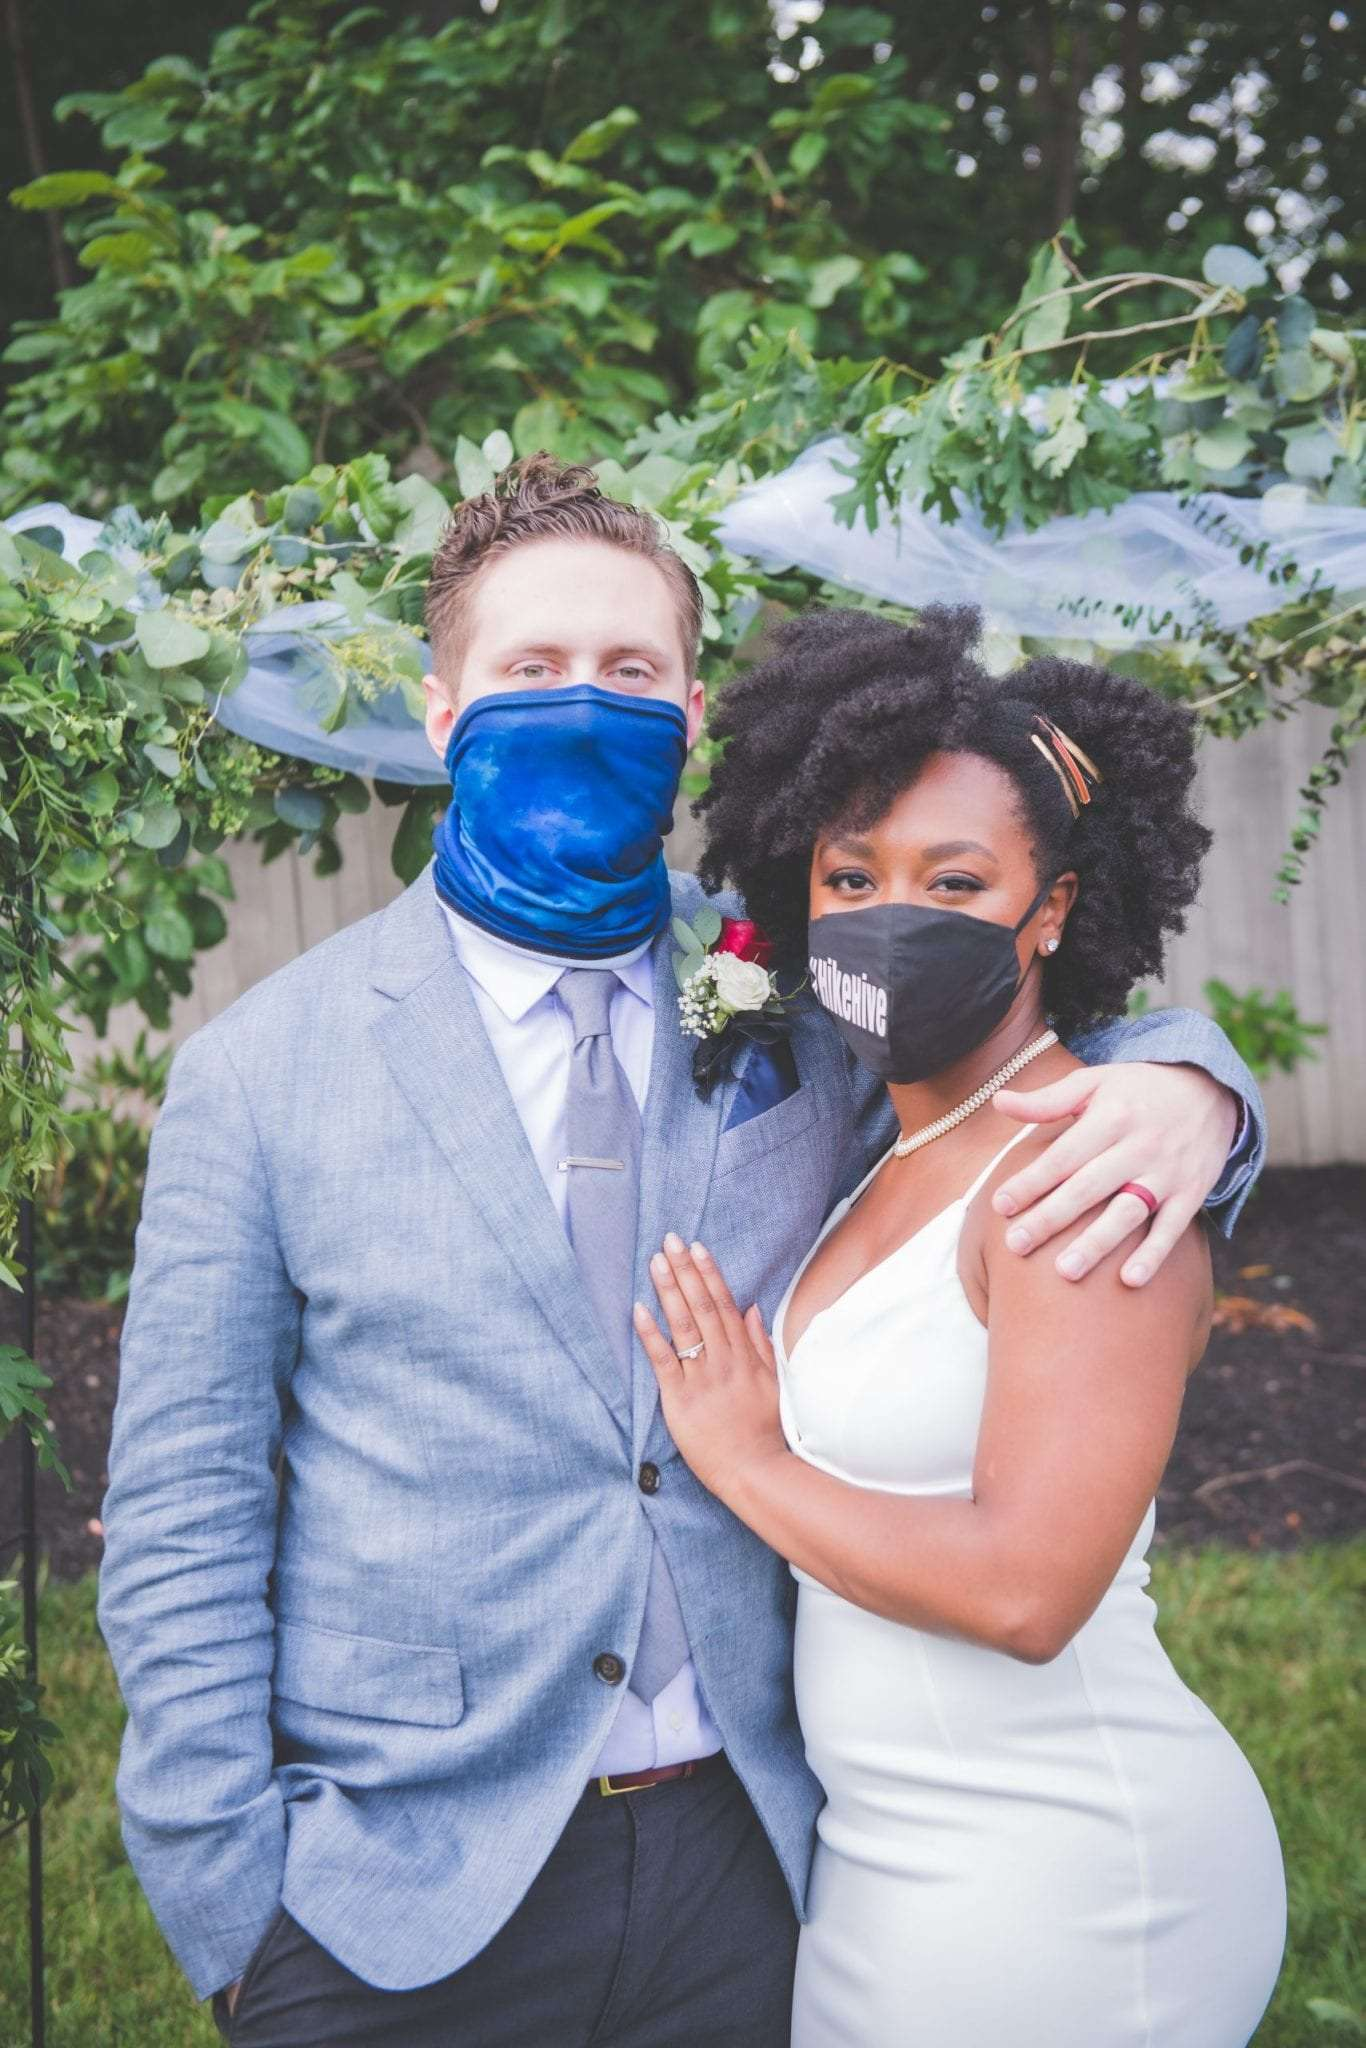 NJ backyard Micro wedding with masks